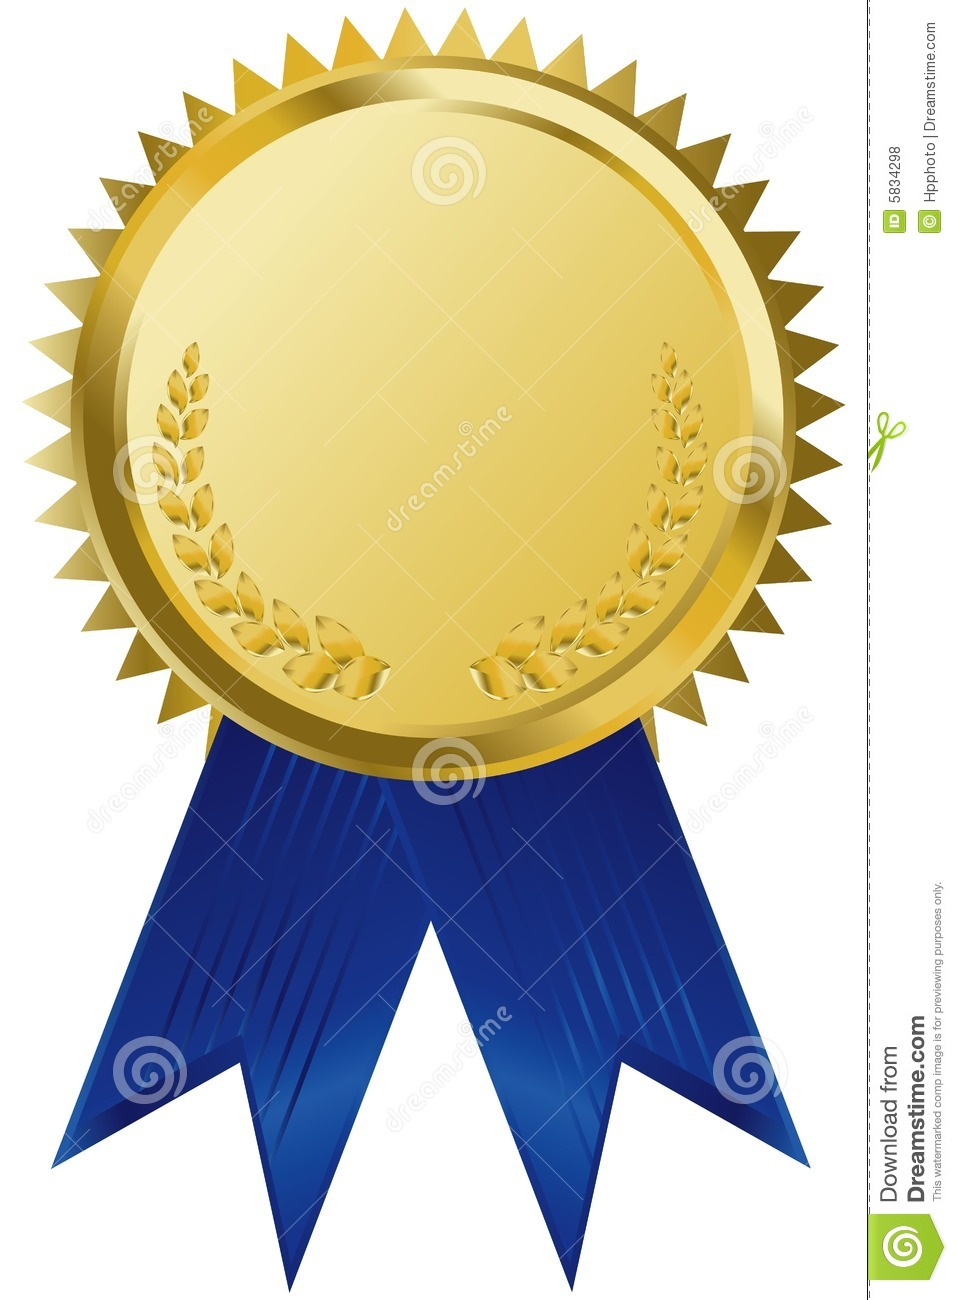 gold award ribbons stock vector illustration of event 5834298